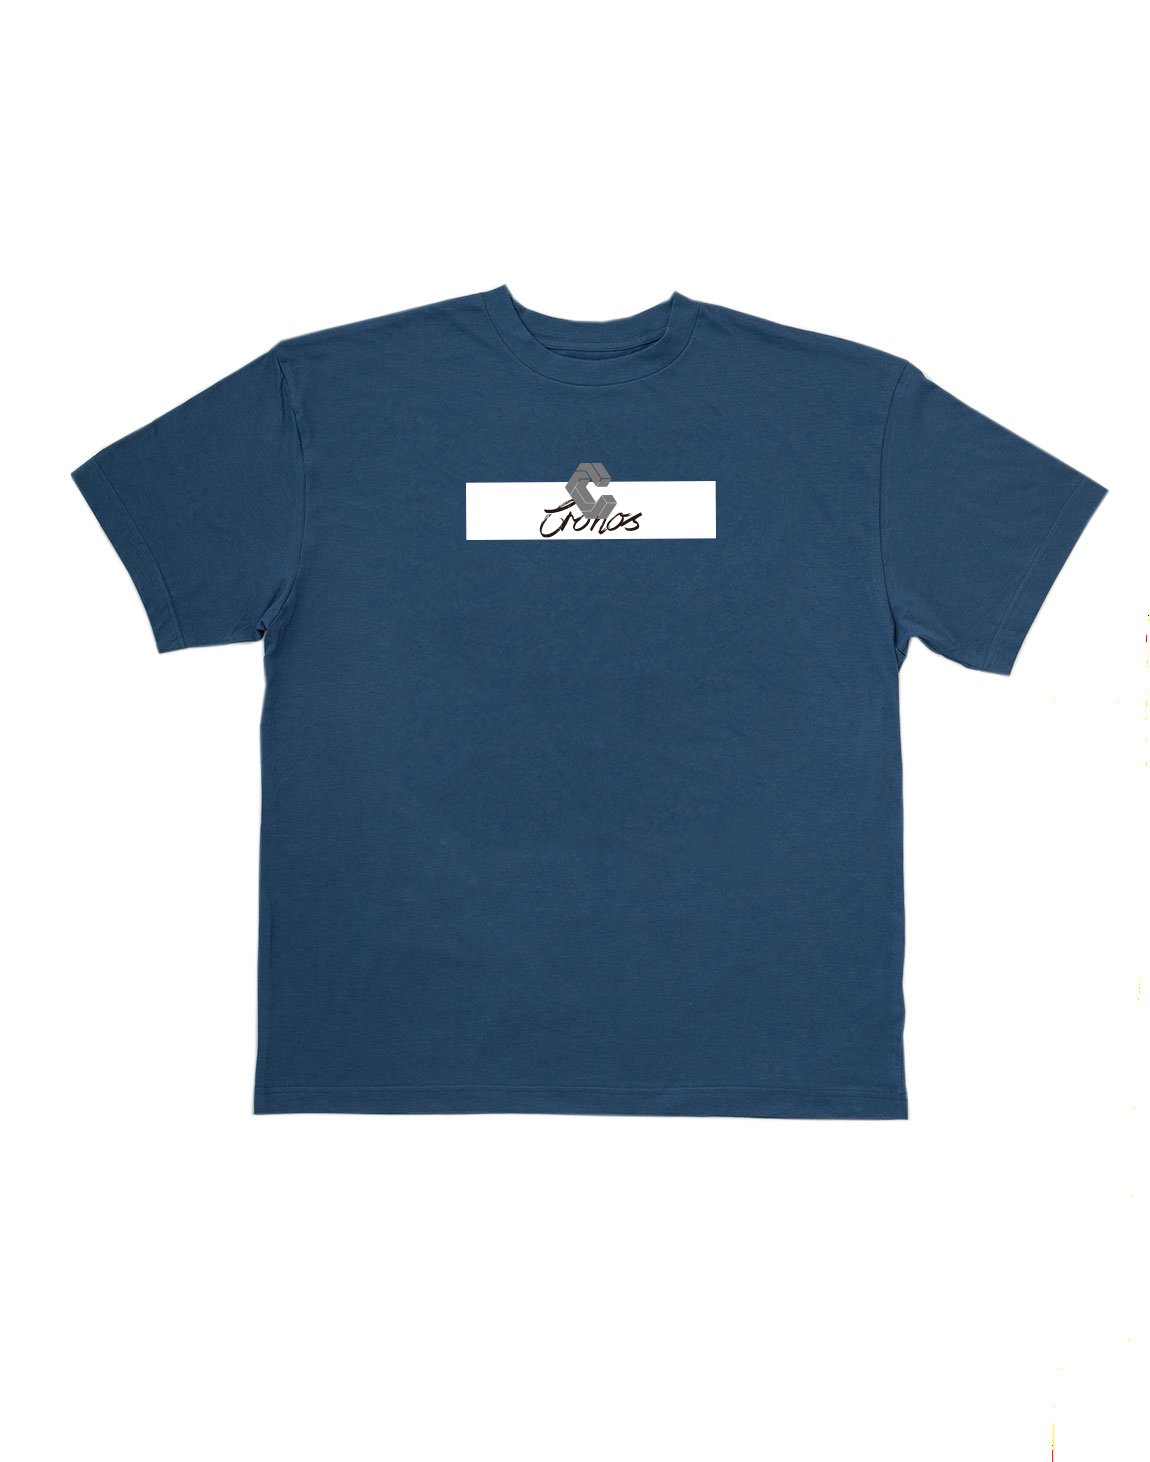 <img class='new_mark_img1' src='https://img.shop-pro.jp/img/new/icons1.gif' style='border:none;display:inline;margin:0px;padding:0px;width:auto;' />CRONOS CURSIVE LOGO T-SHIRT【BLUE】